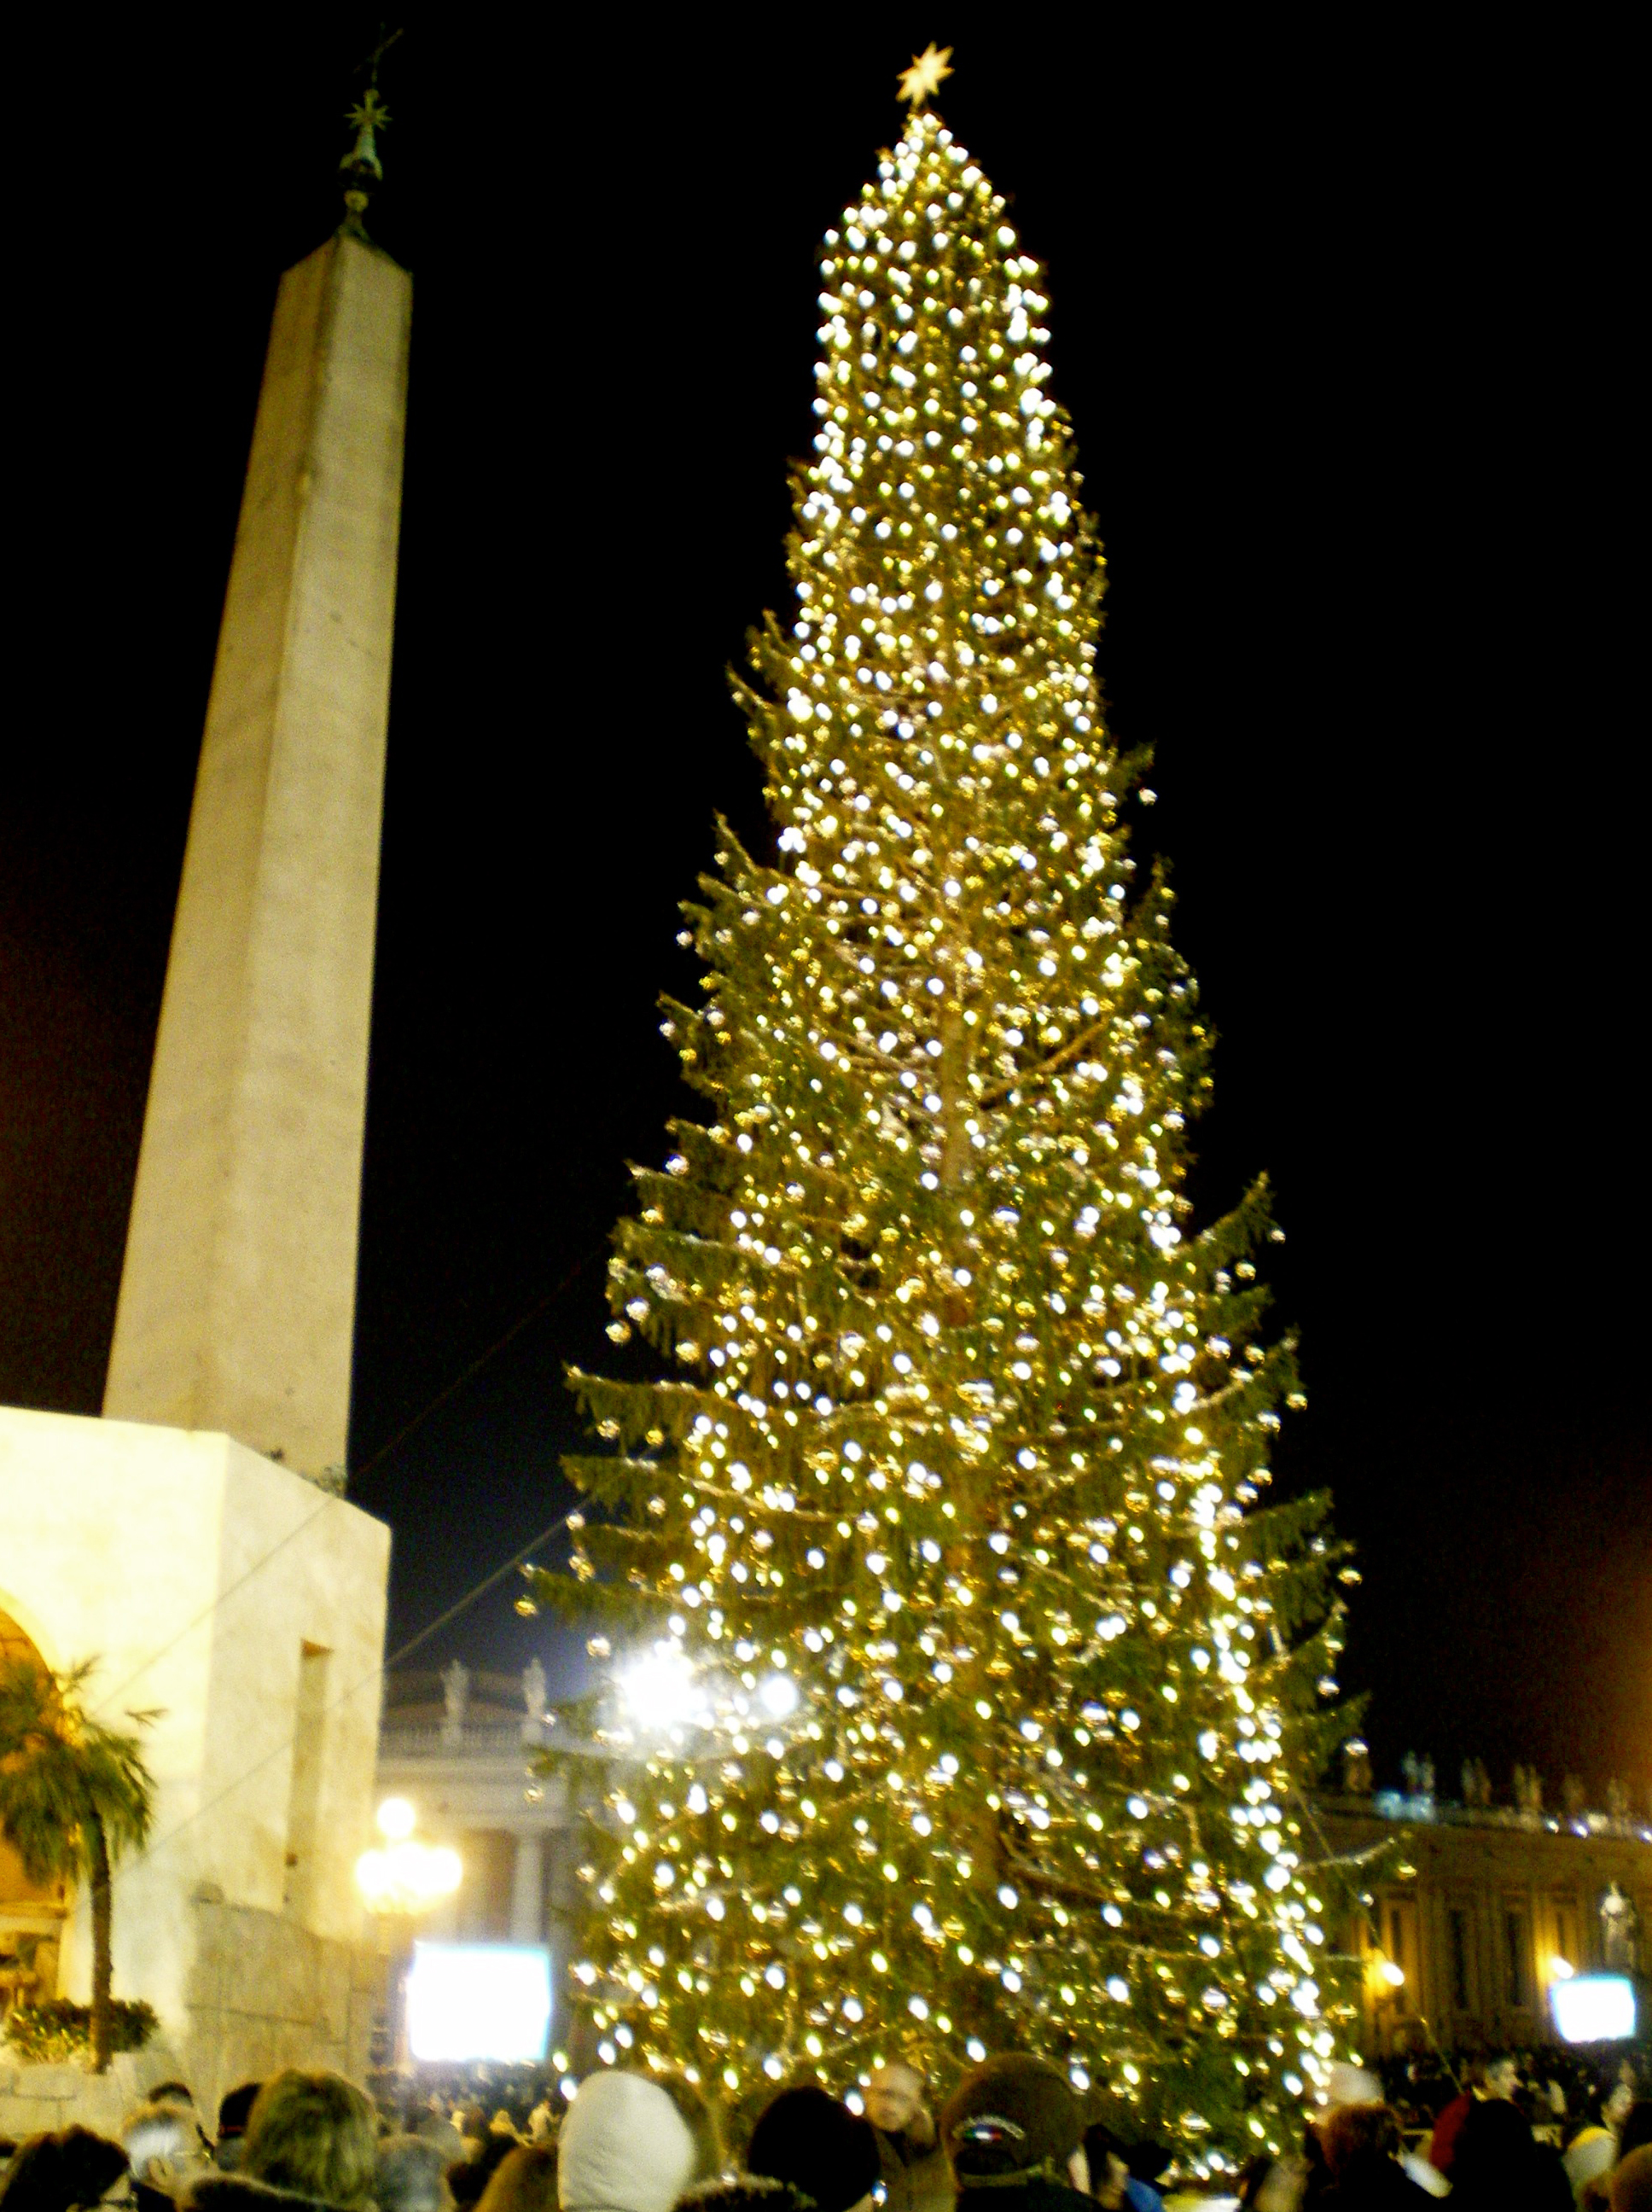 Description Vatican Christmas Tree.jpg